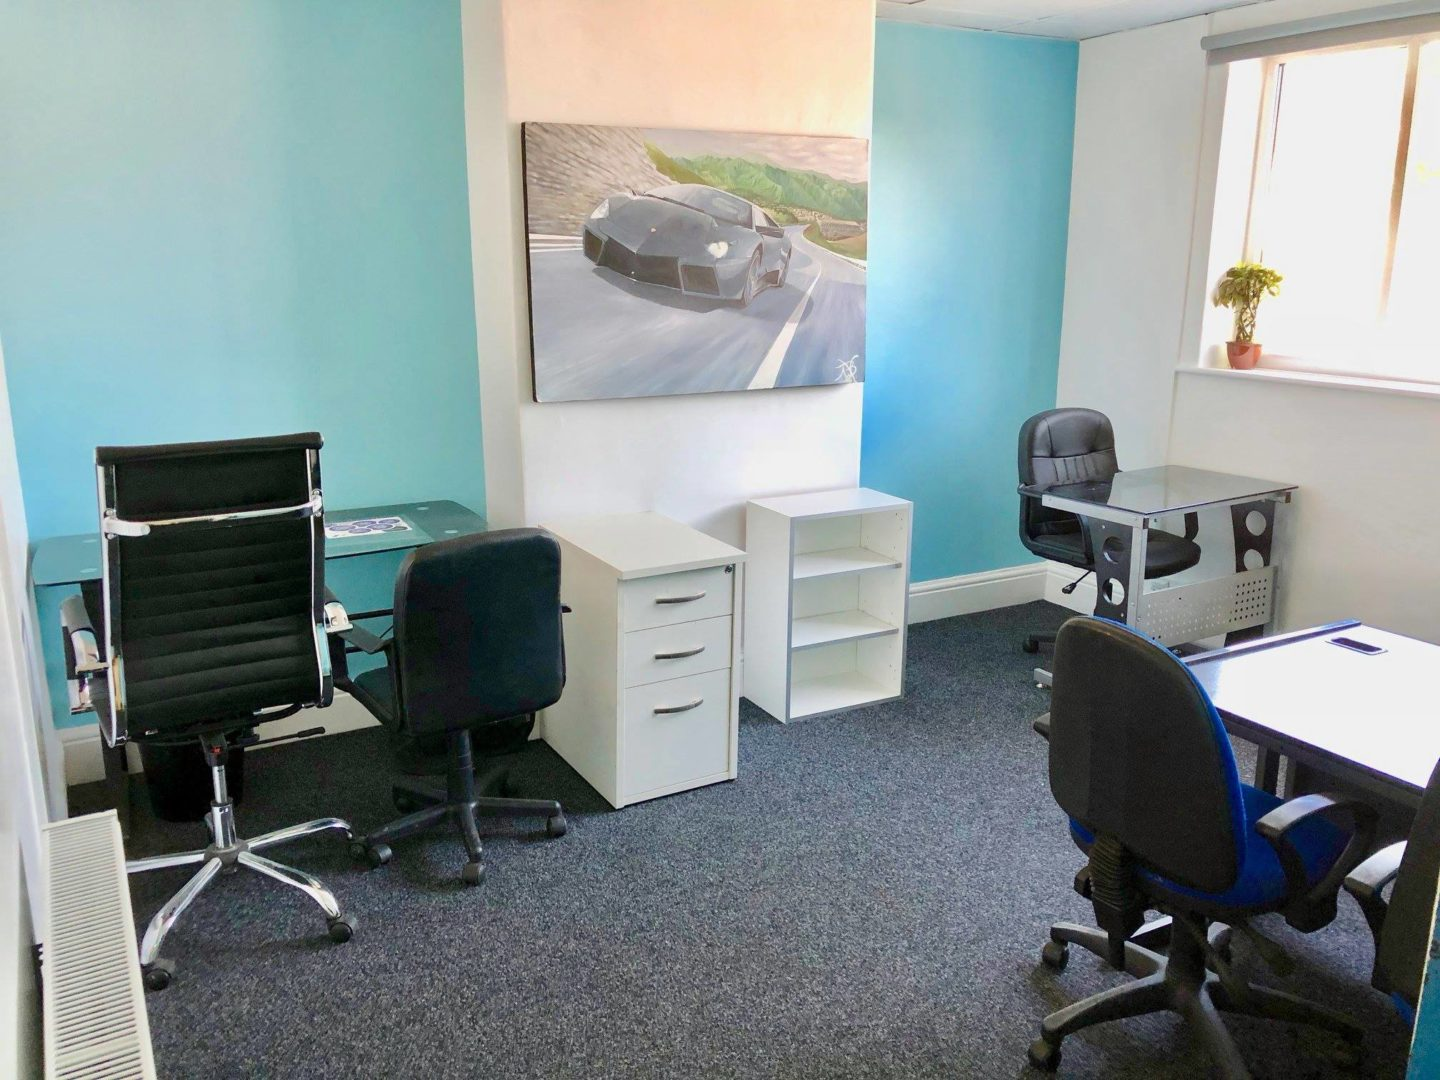 whitfield business hub heswall wirral merseyside serviced offices mailbox virtual receptionist meeting room hire